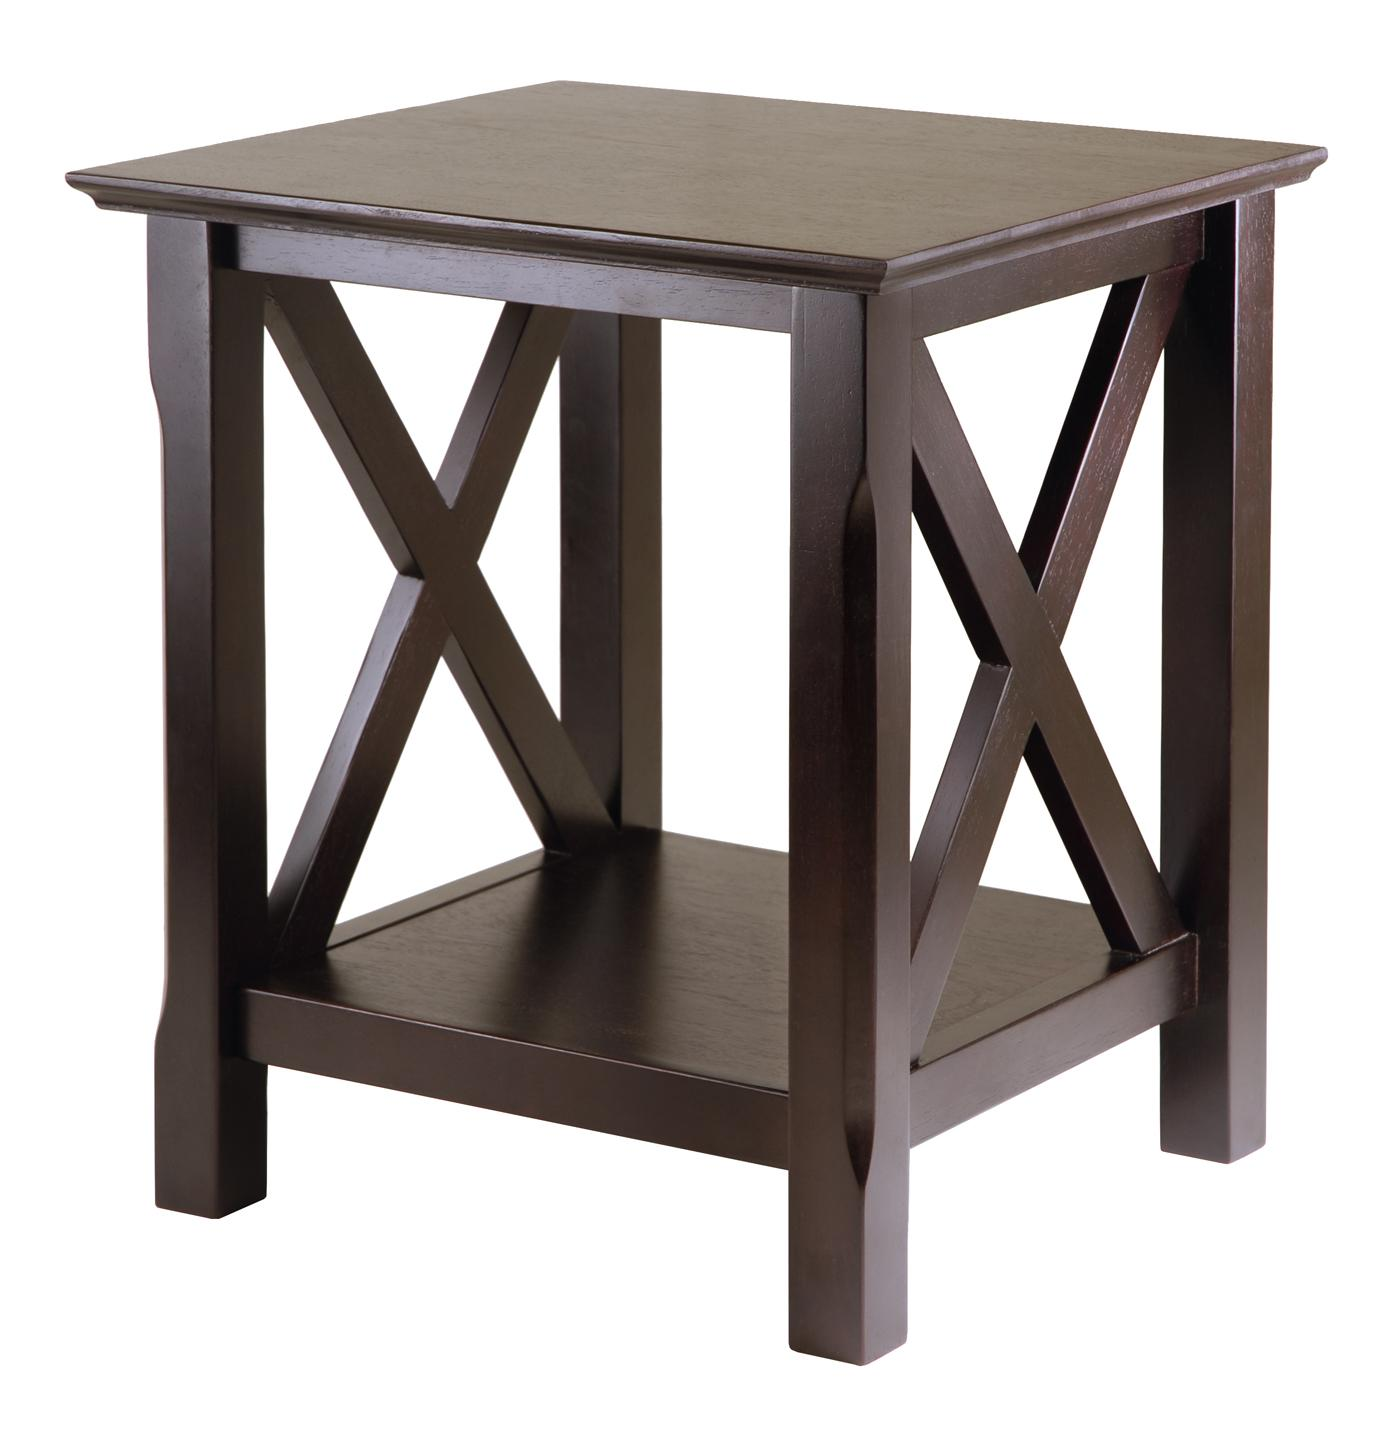 Custom Design Kitchen Winsome Xola End Table By Oj Commerce 40420a 68 25